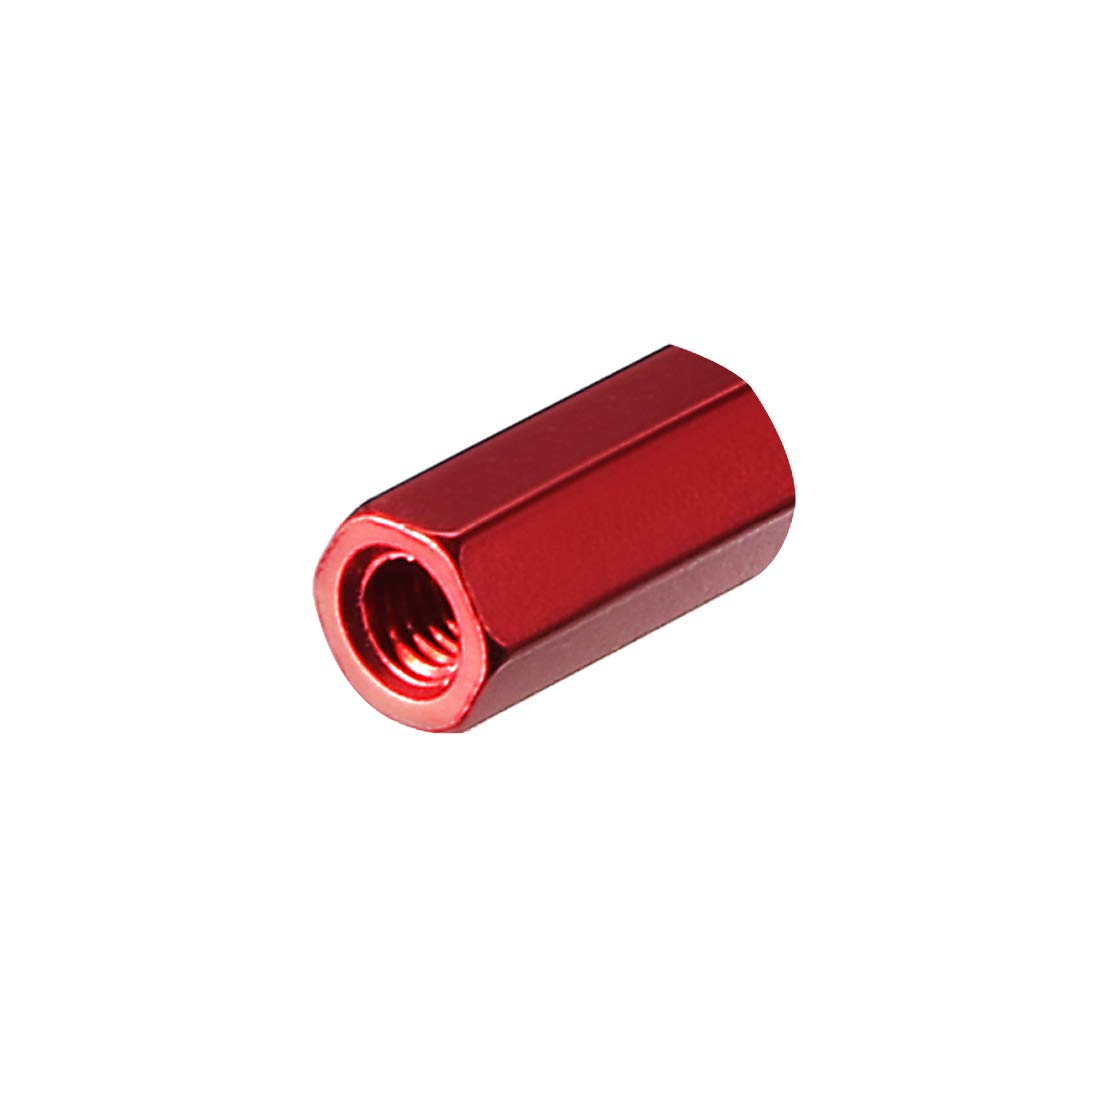 uxcell M3x45mm Aluminum Hex Standoff PCB Pillar Spacer,for RC Airplane,FPV Quadcopter,CNC,Red,10pcs